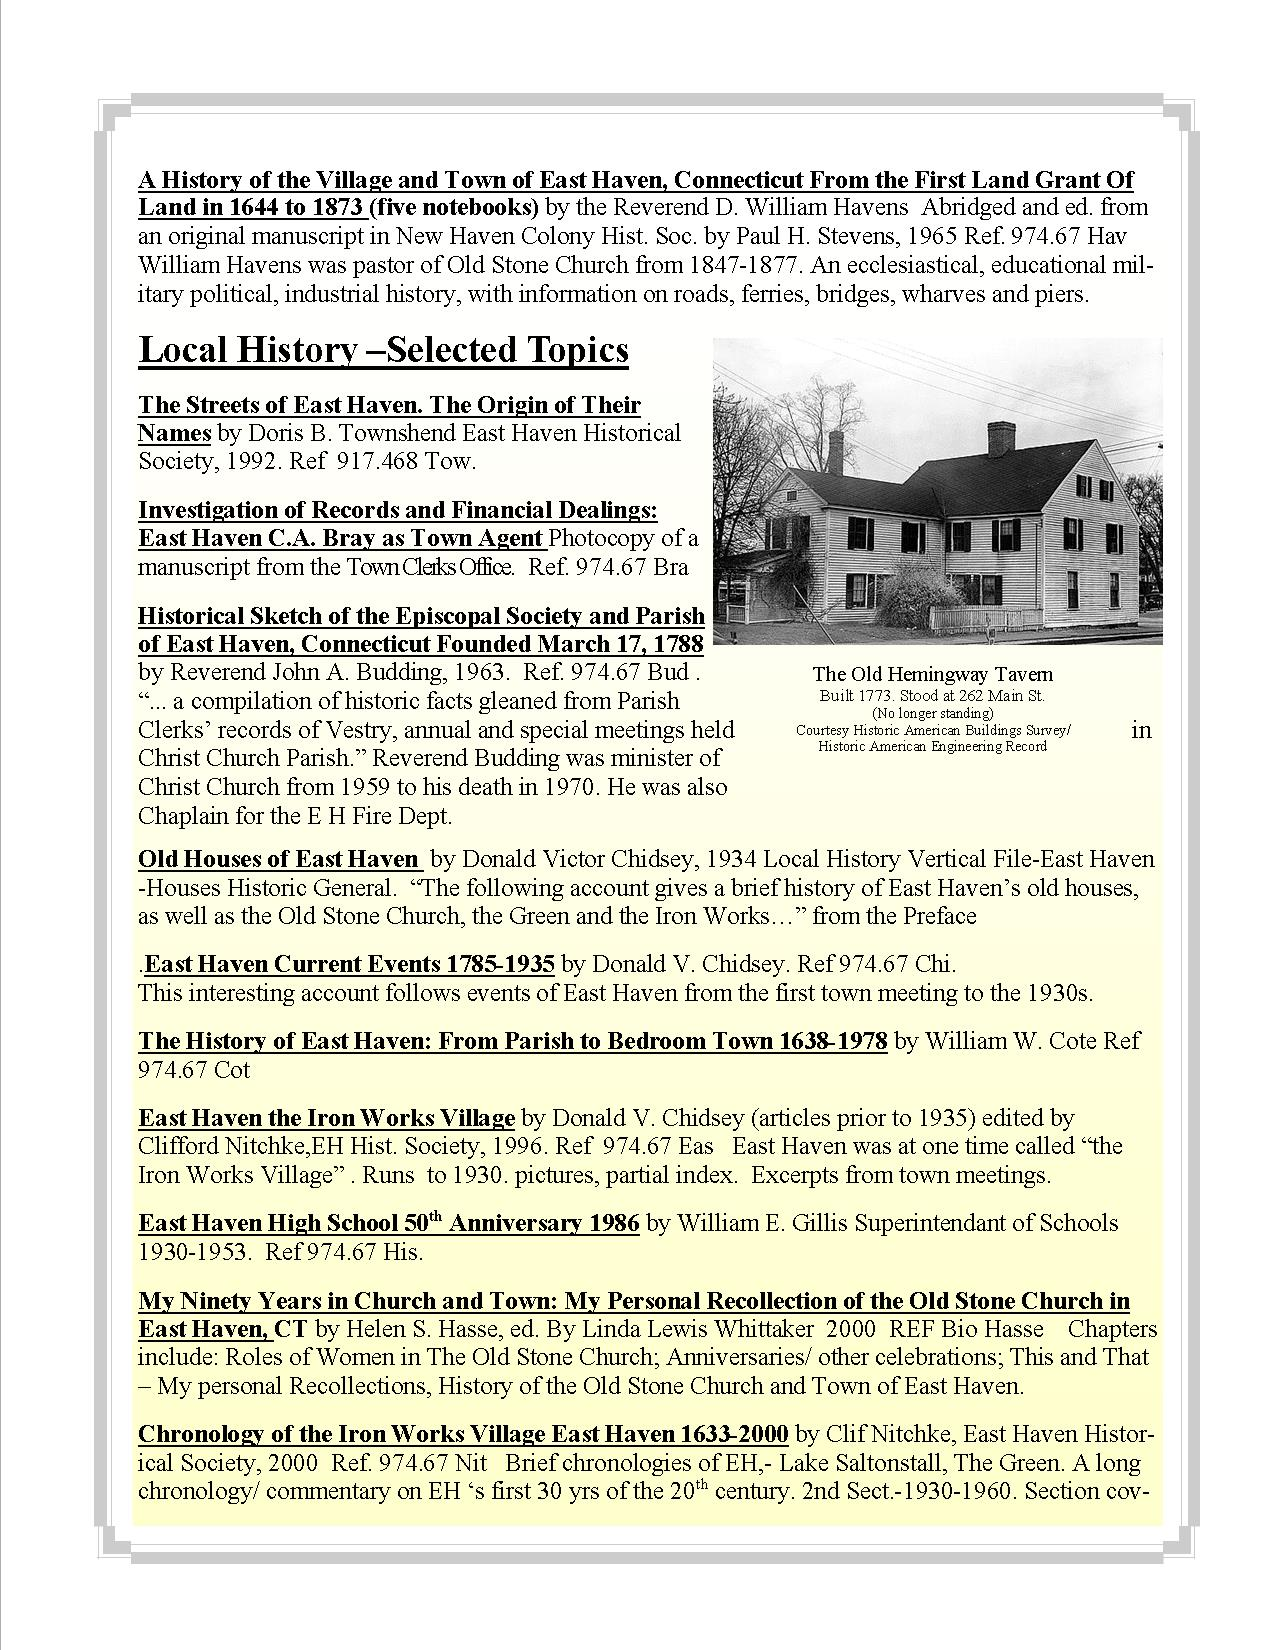 East Haven Historical Books and Documents Online and at the